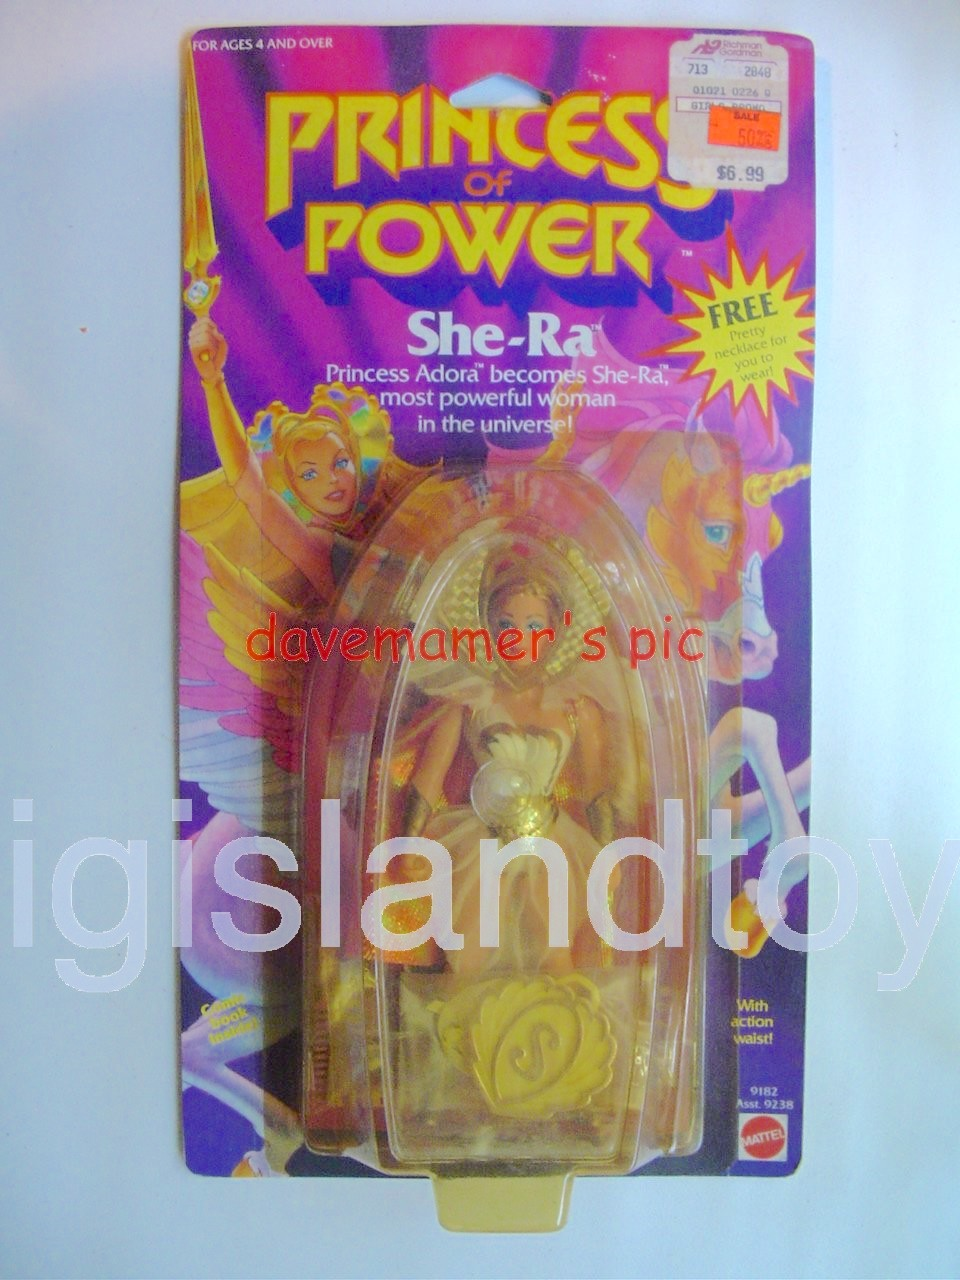 Princess of Power Action Figures   She-Ra Princess AdoraWith Necklace Premium